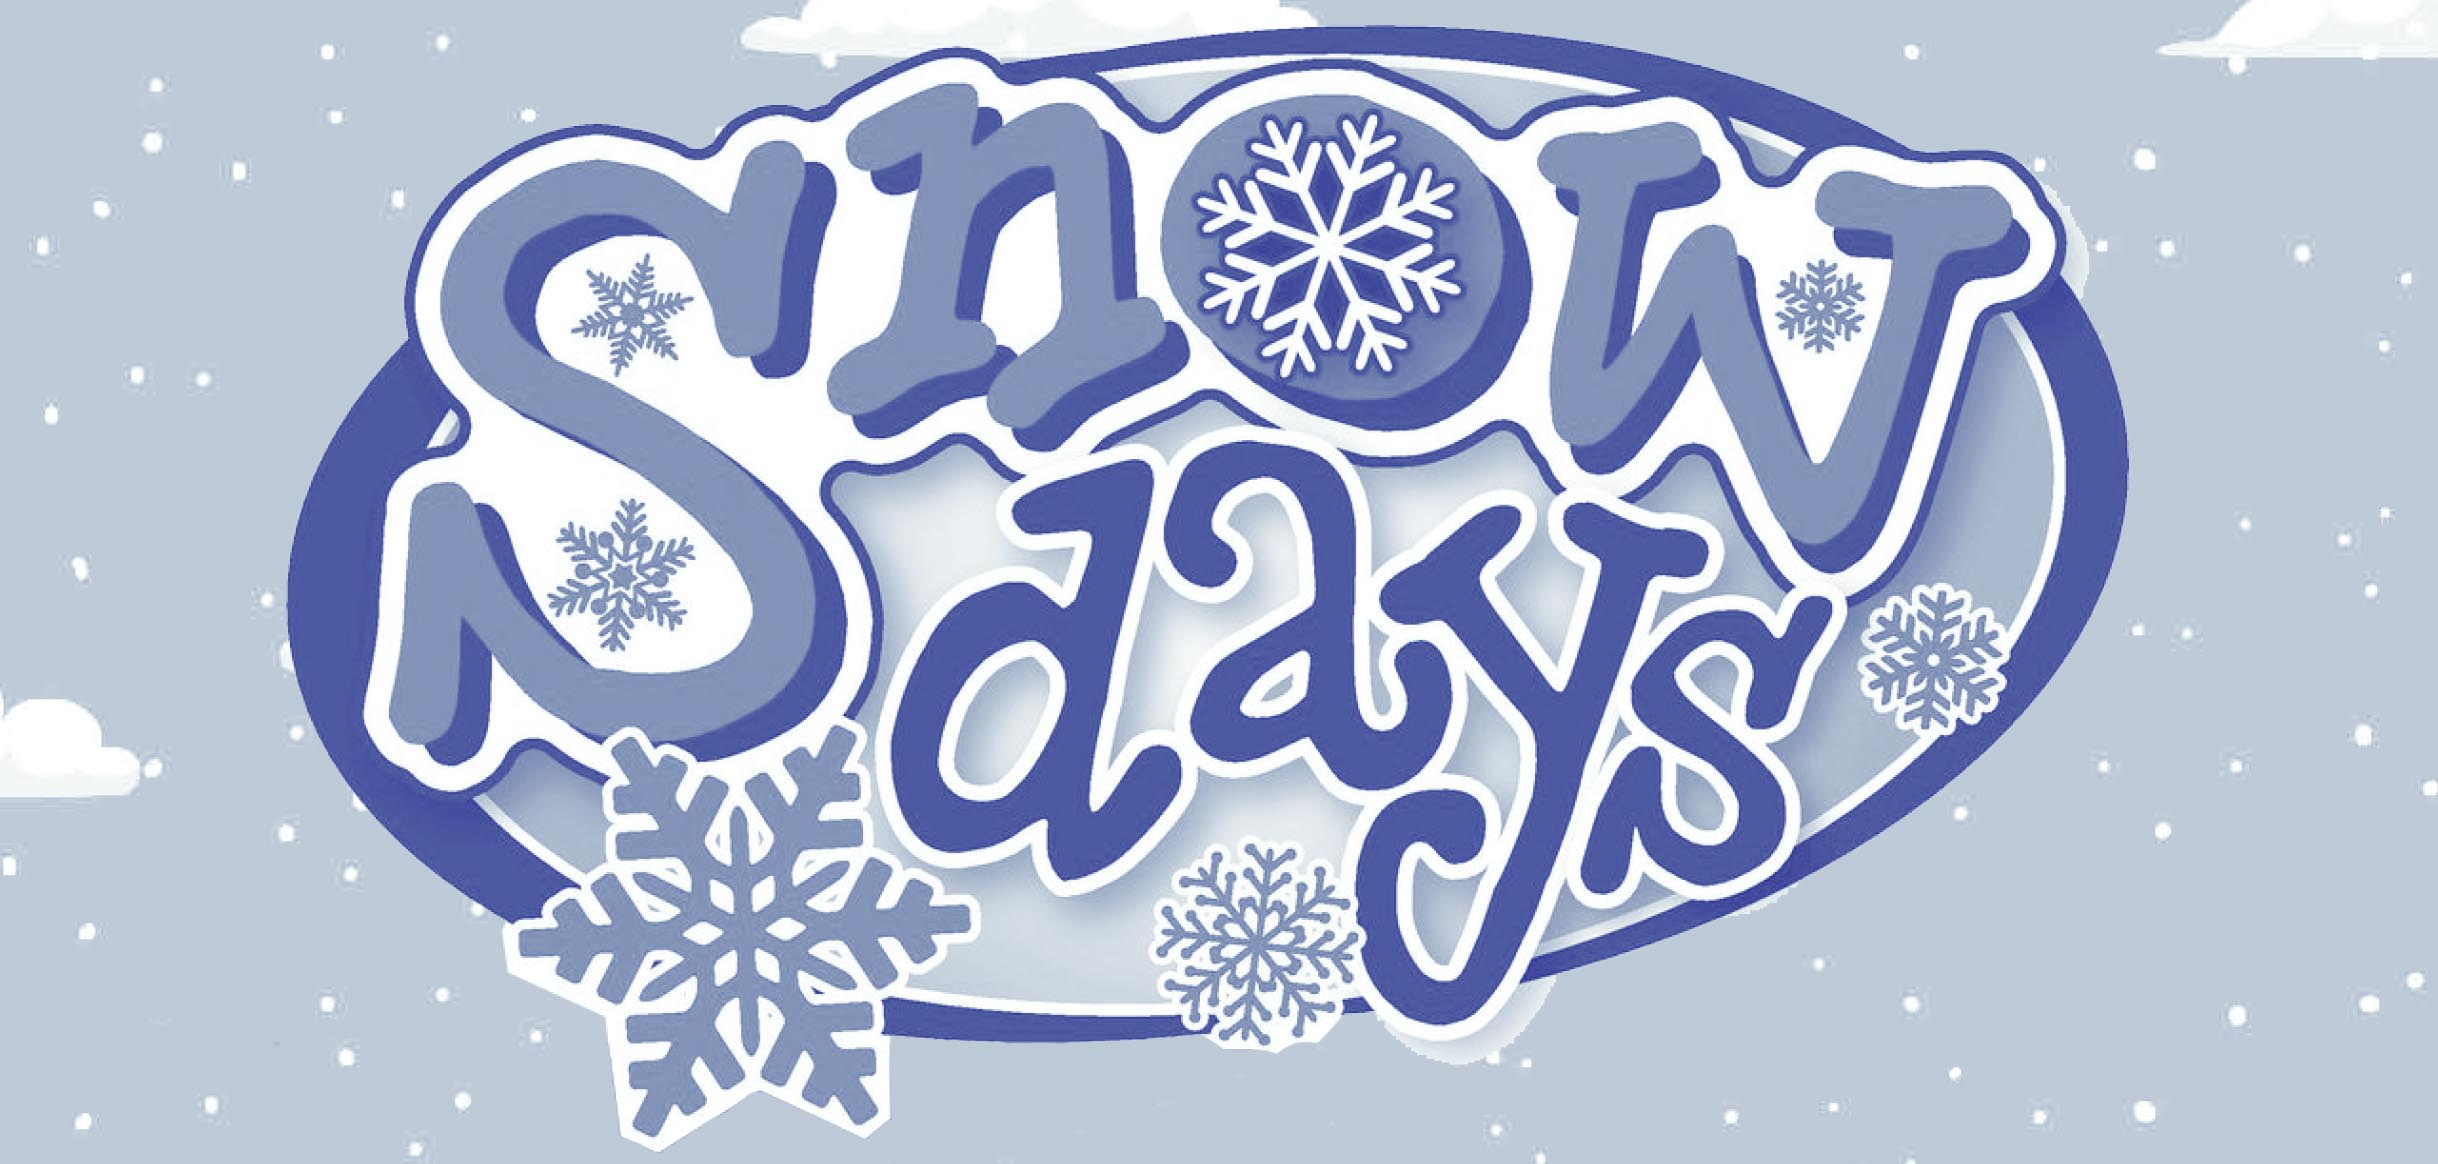 Snow Days Image